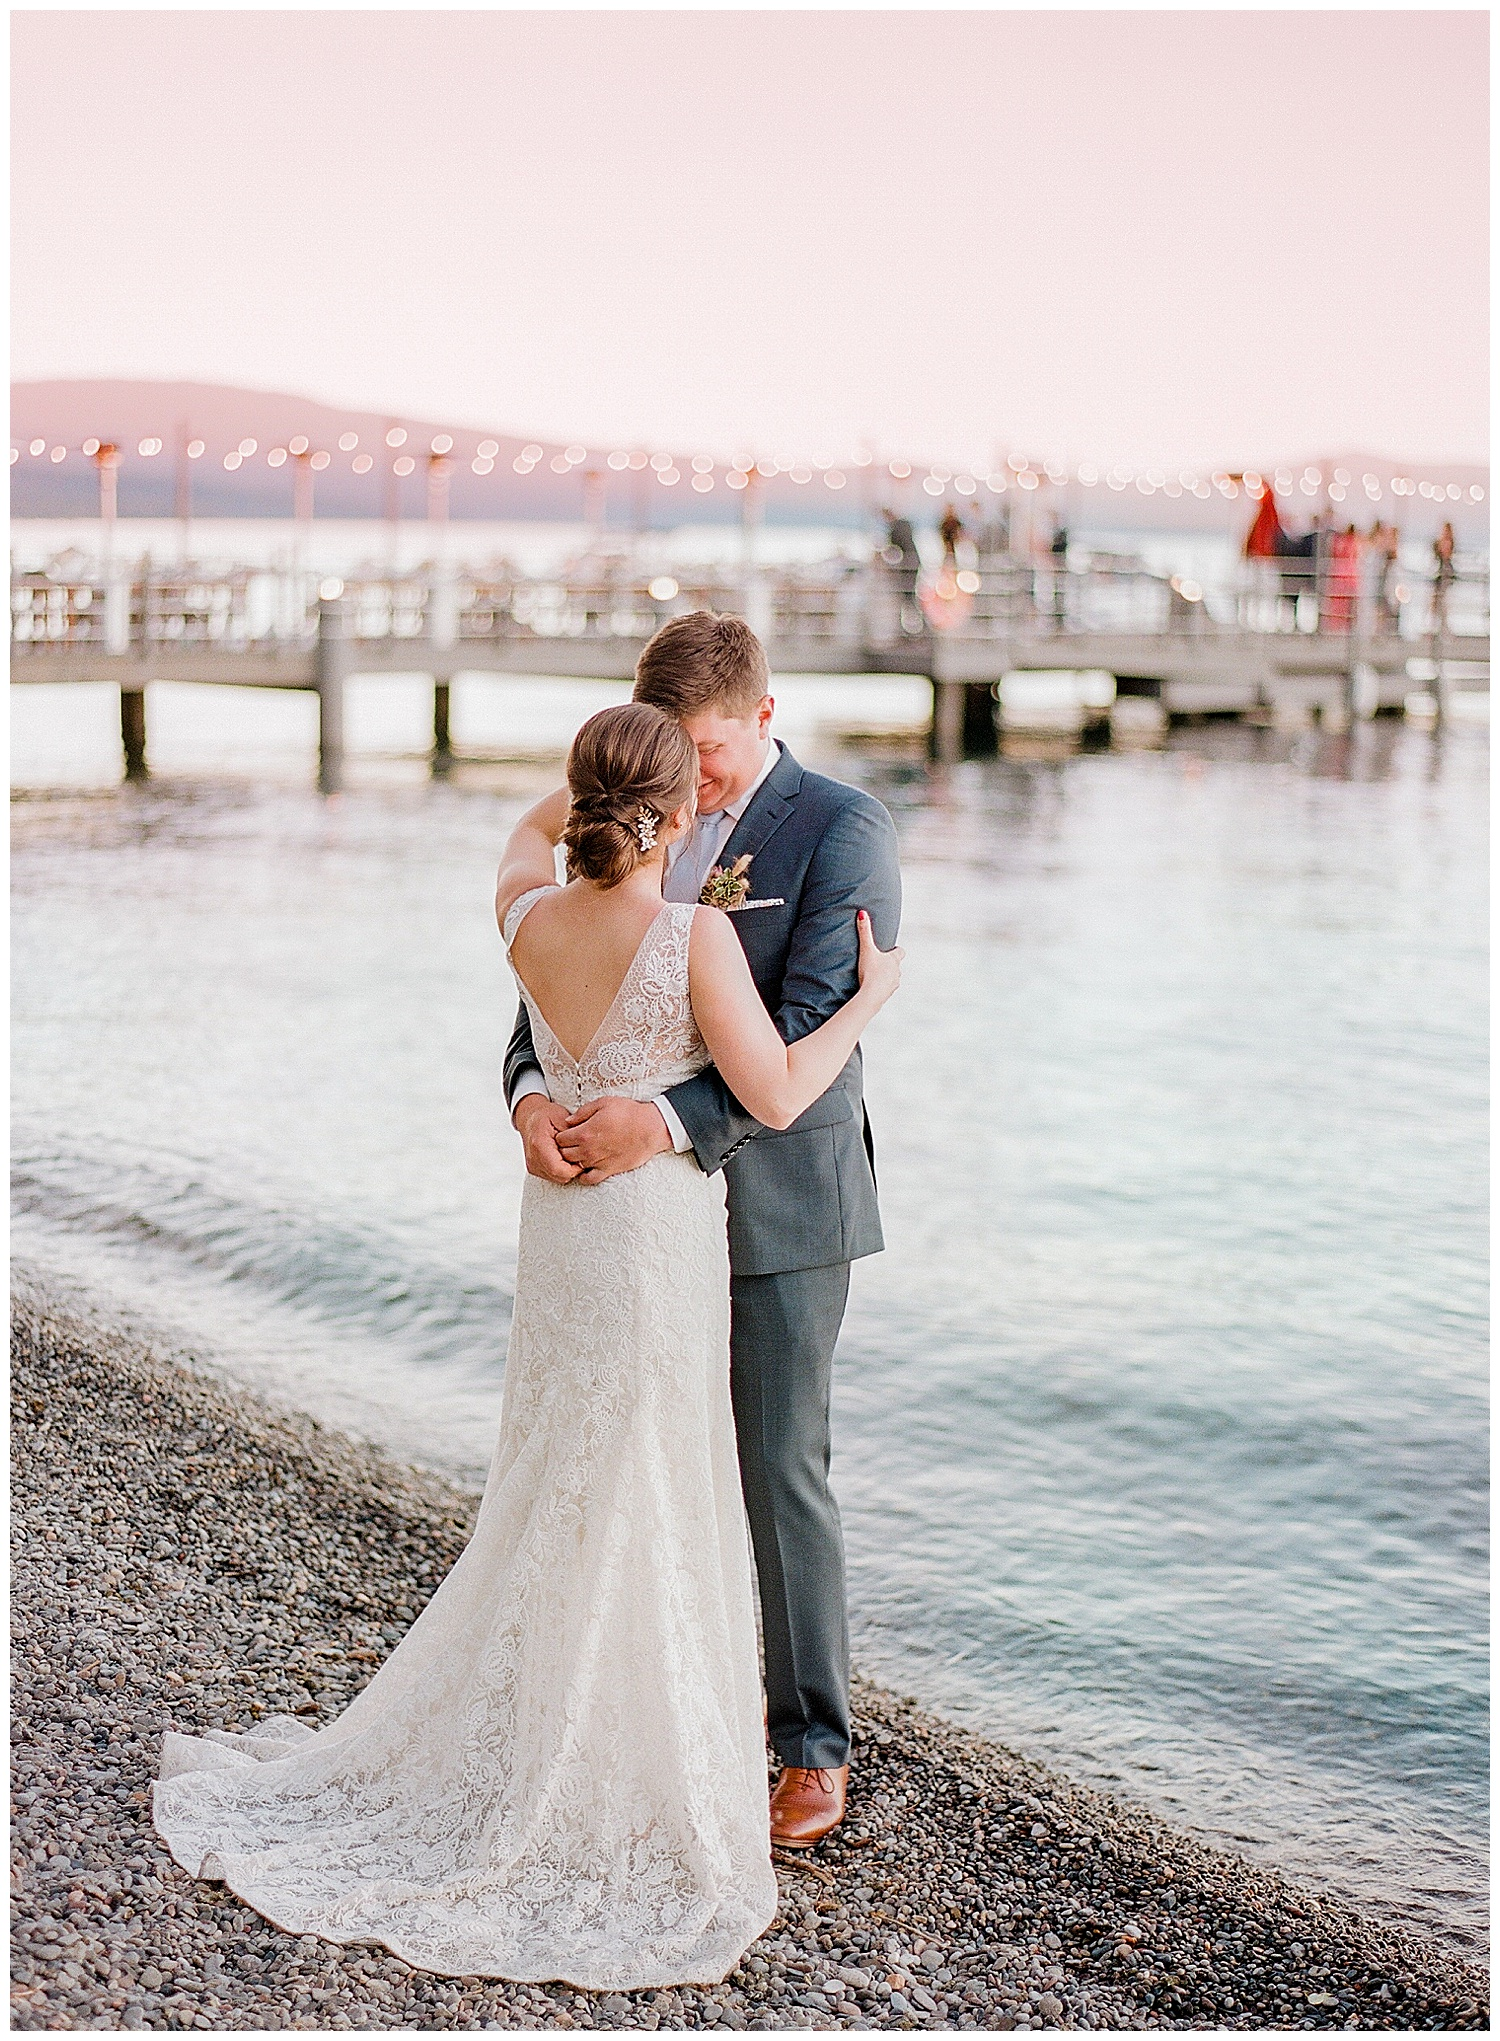 Janine_Licare_Photography_San_Francisco_Wedding_Photographer_Lake_Tahoe_West_Shore_Cafe_Colorful_Summer_0055.jpg